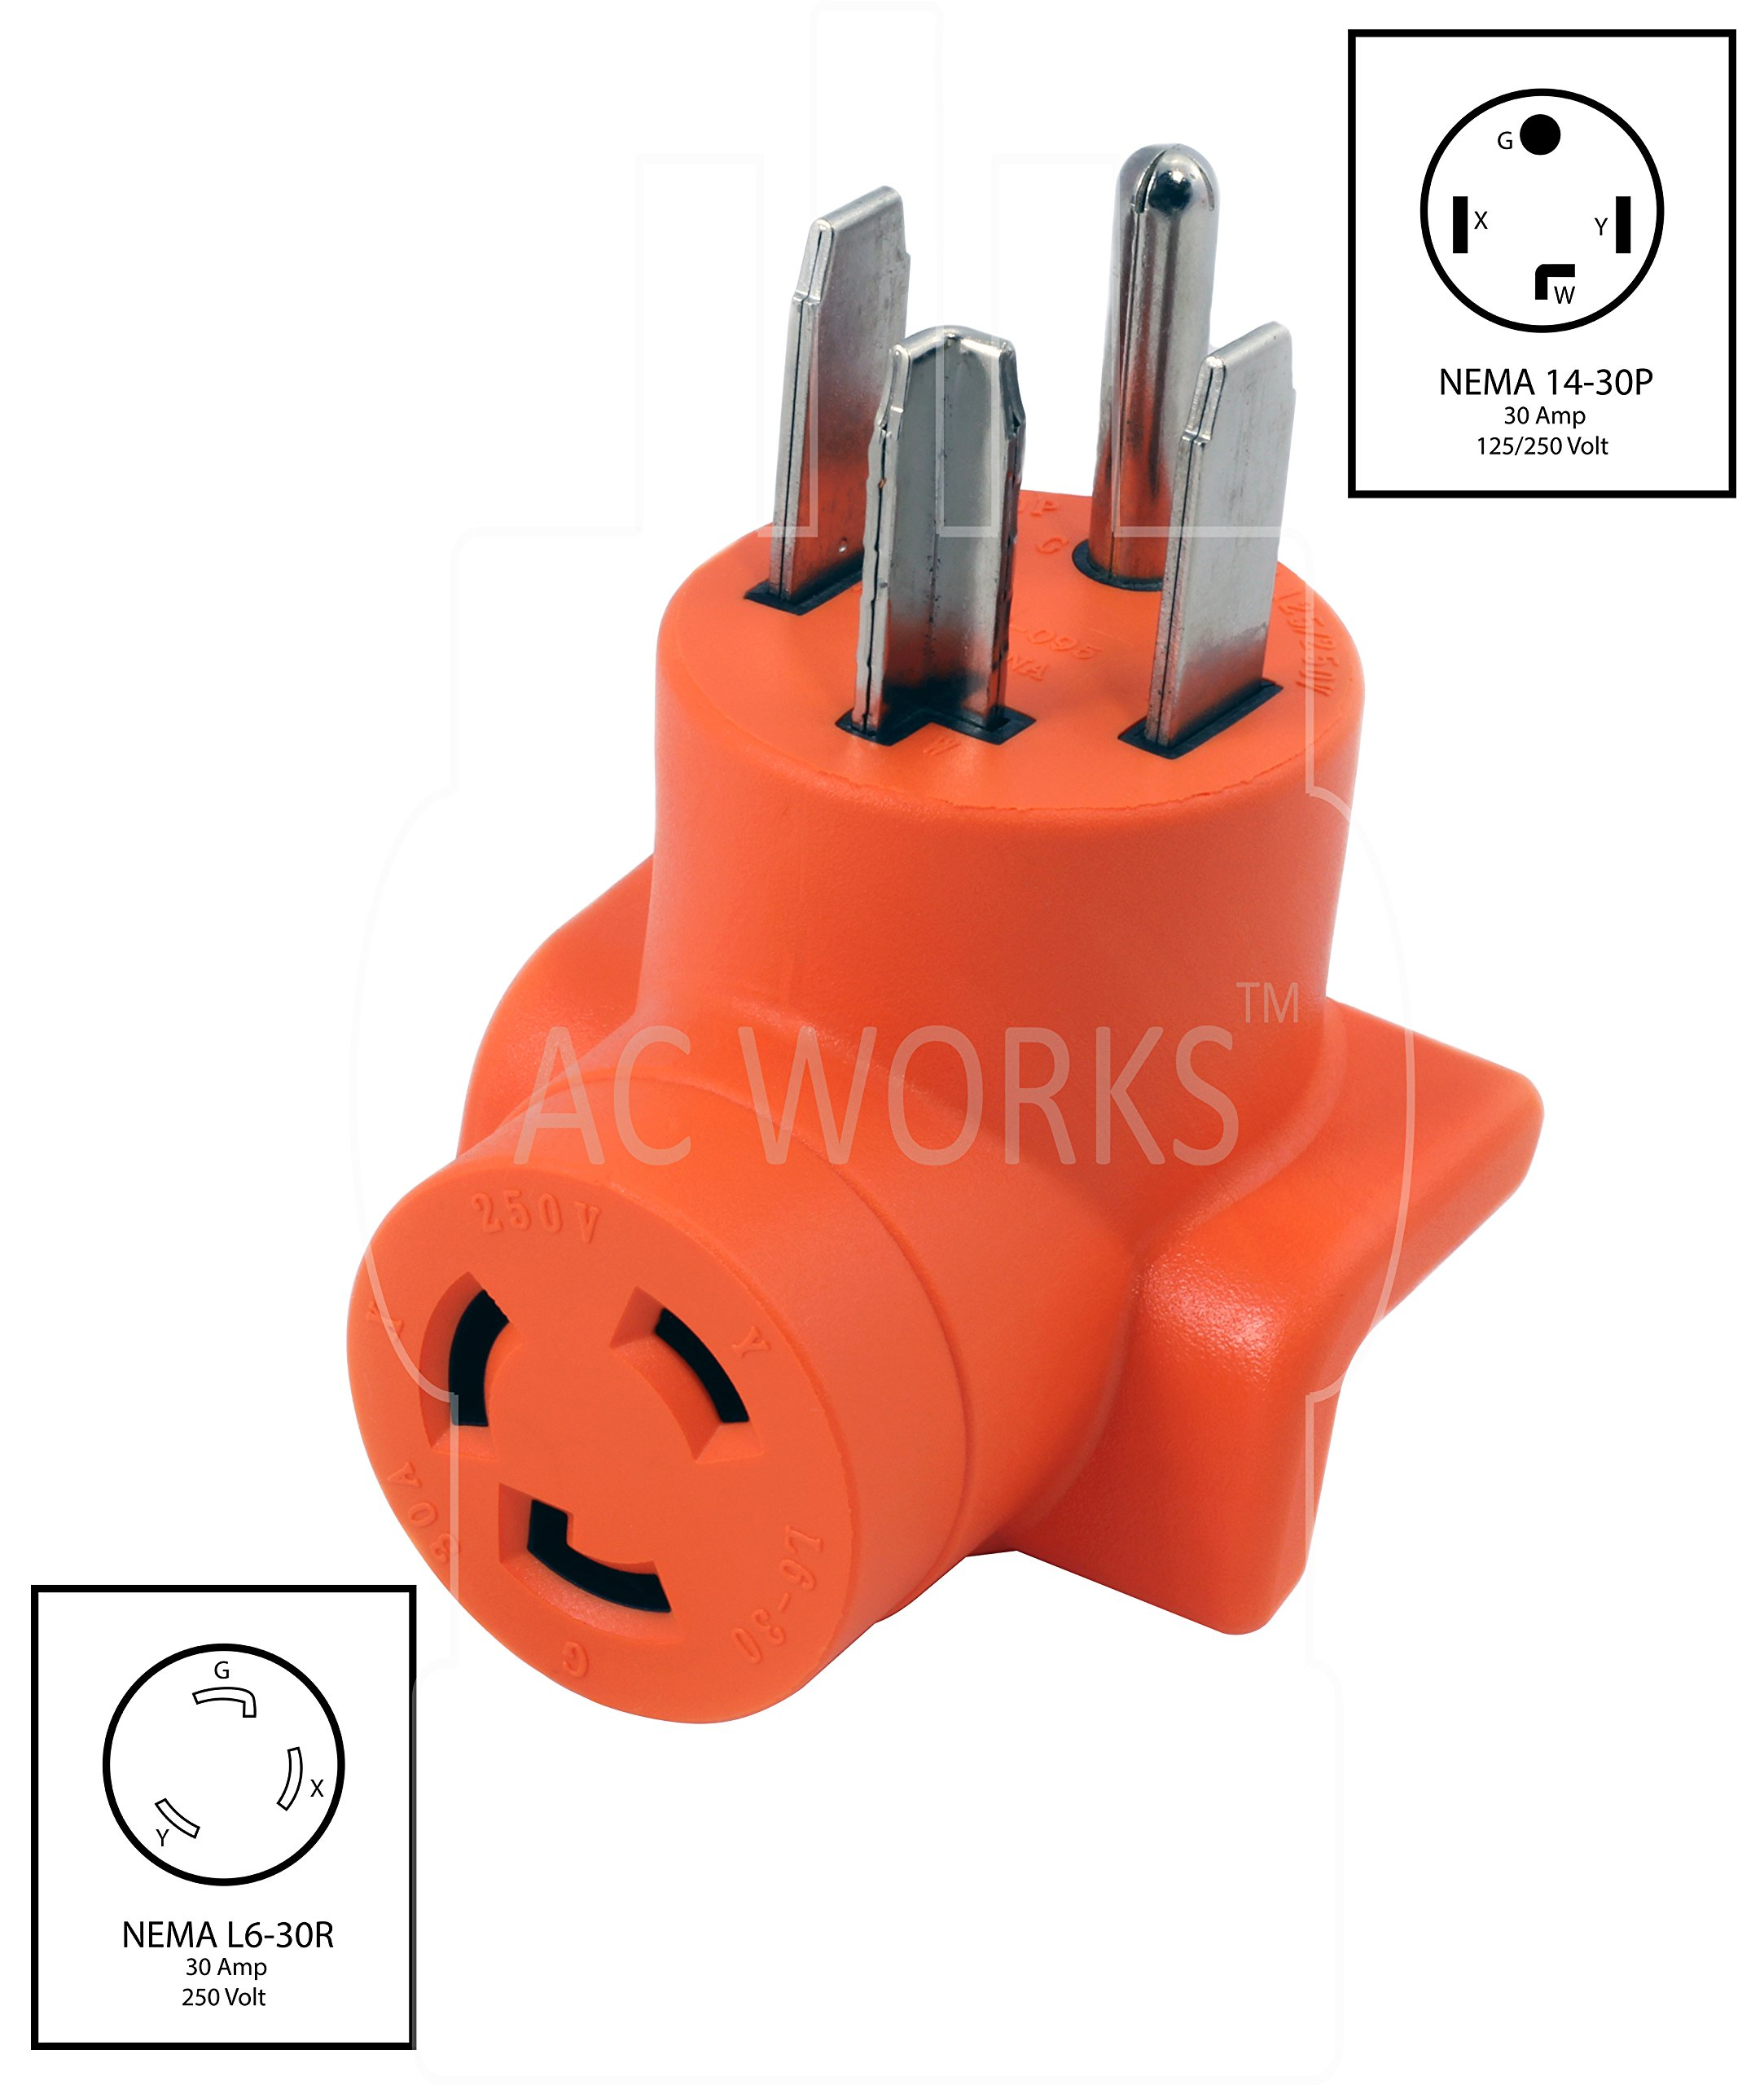 AC WORKS [AD1430L630] Plug Adapter NEMA 14-30P 4-Prong 30Amp Dryer Outlet to L6-30R 30Amp 250Volt Locking Female Connector by AC WORKS (Image #2)